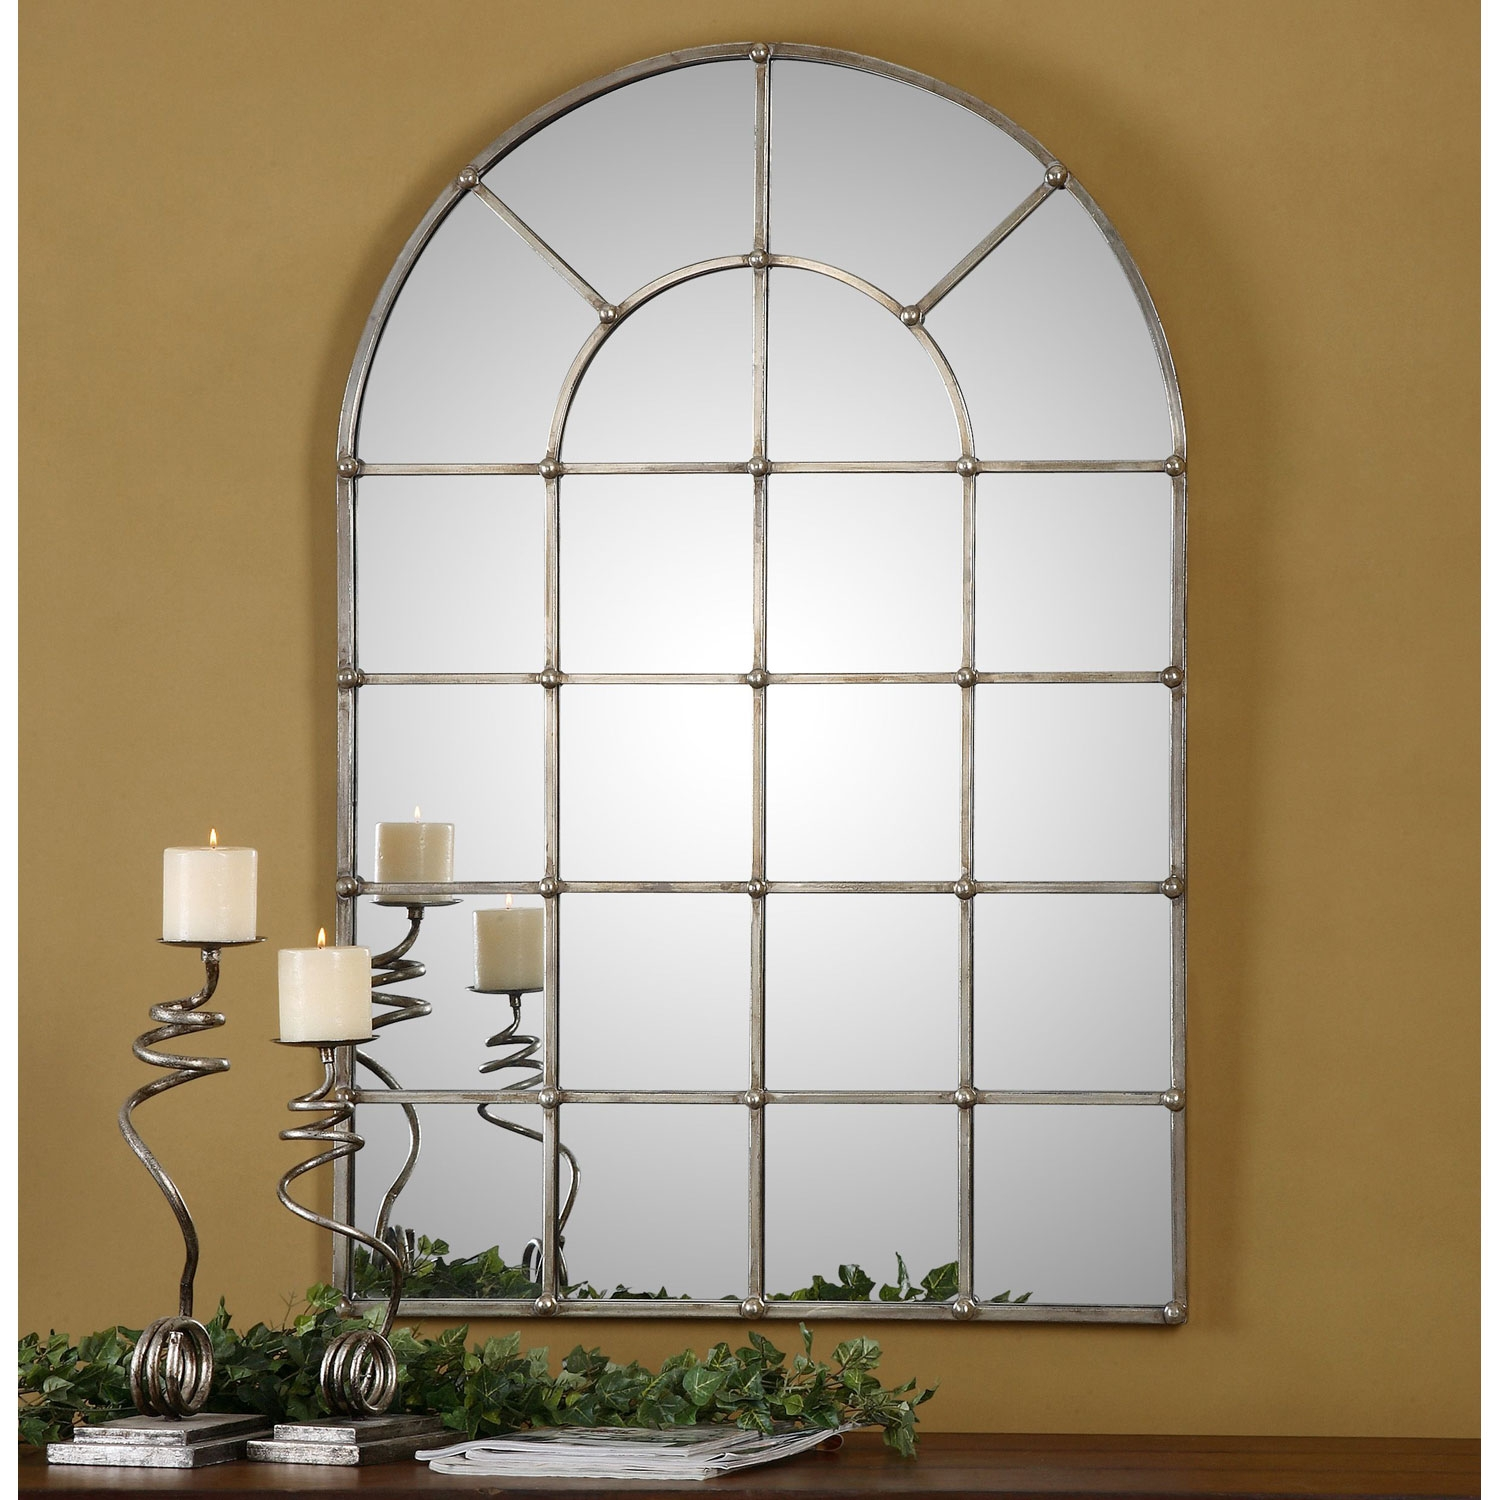 Barwell Forged Metal With Oxidized Plated Silver Arch Window With Regard To Window Arch Mirror (View 8 of 15)